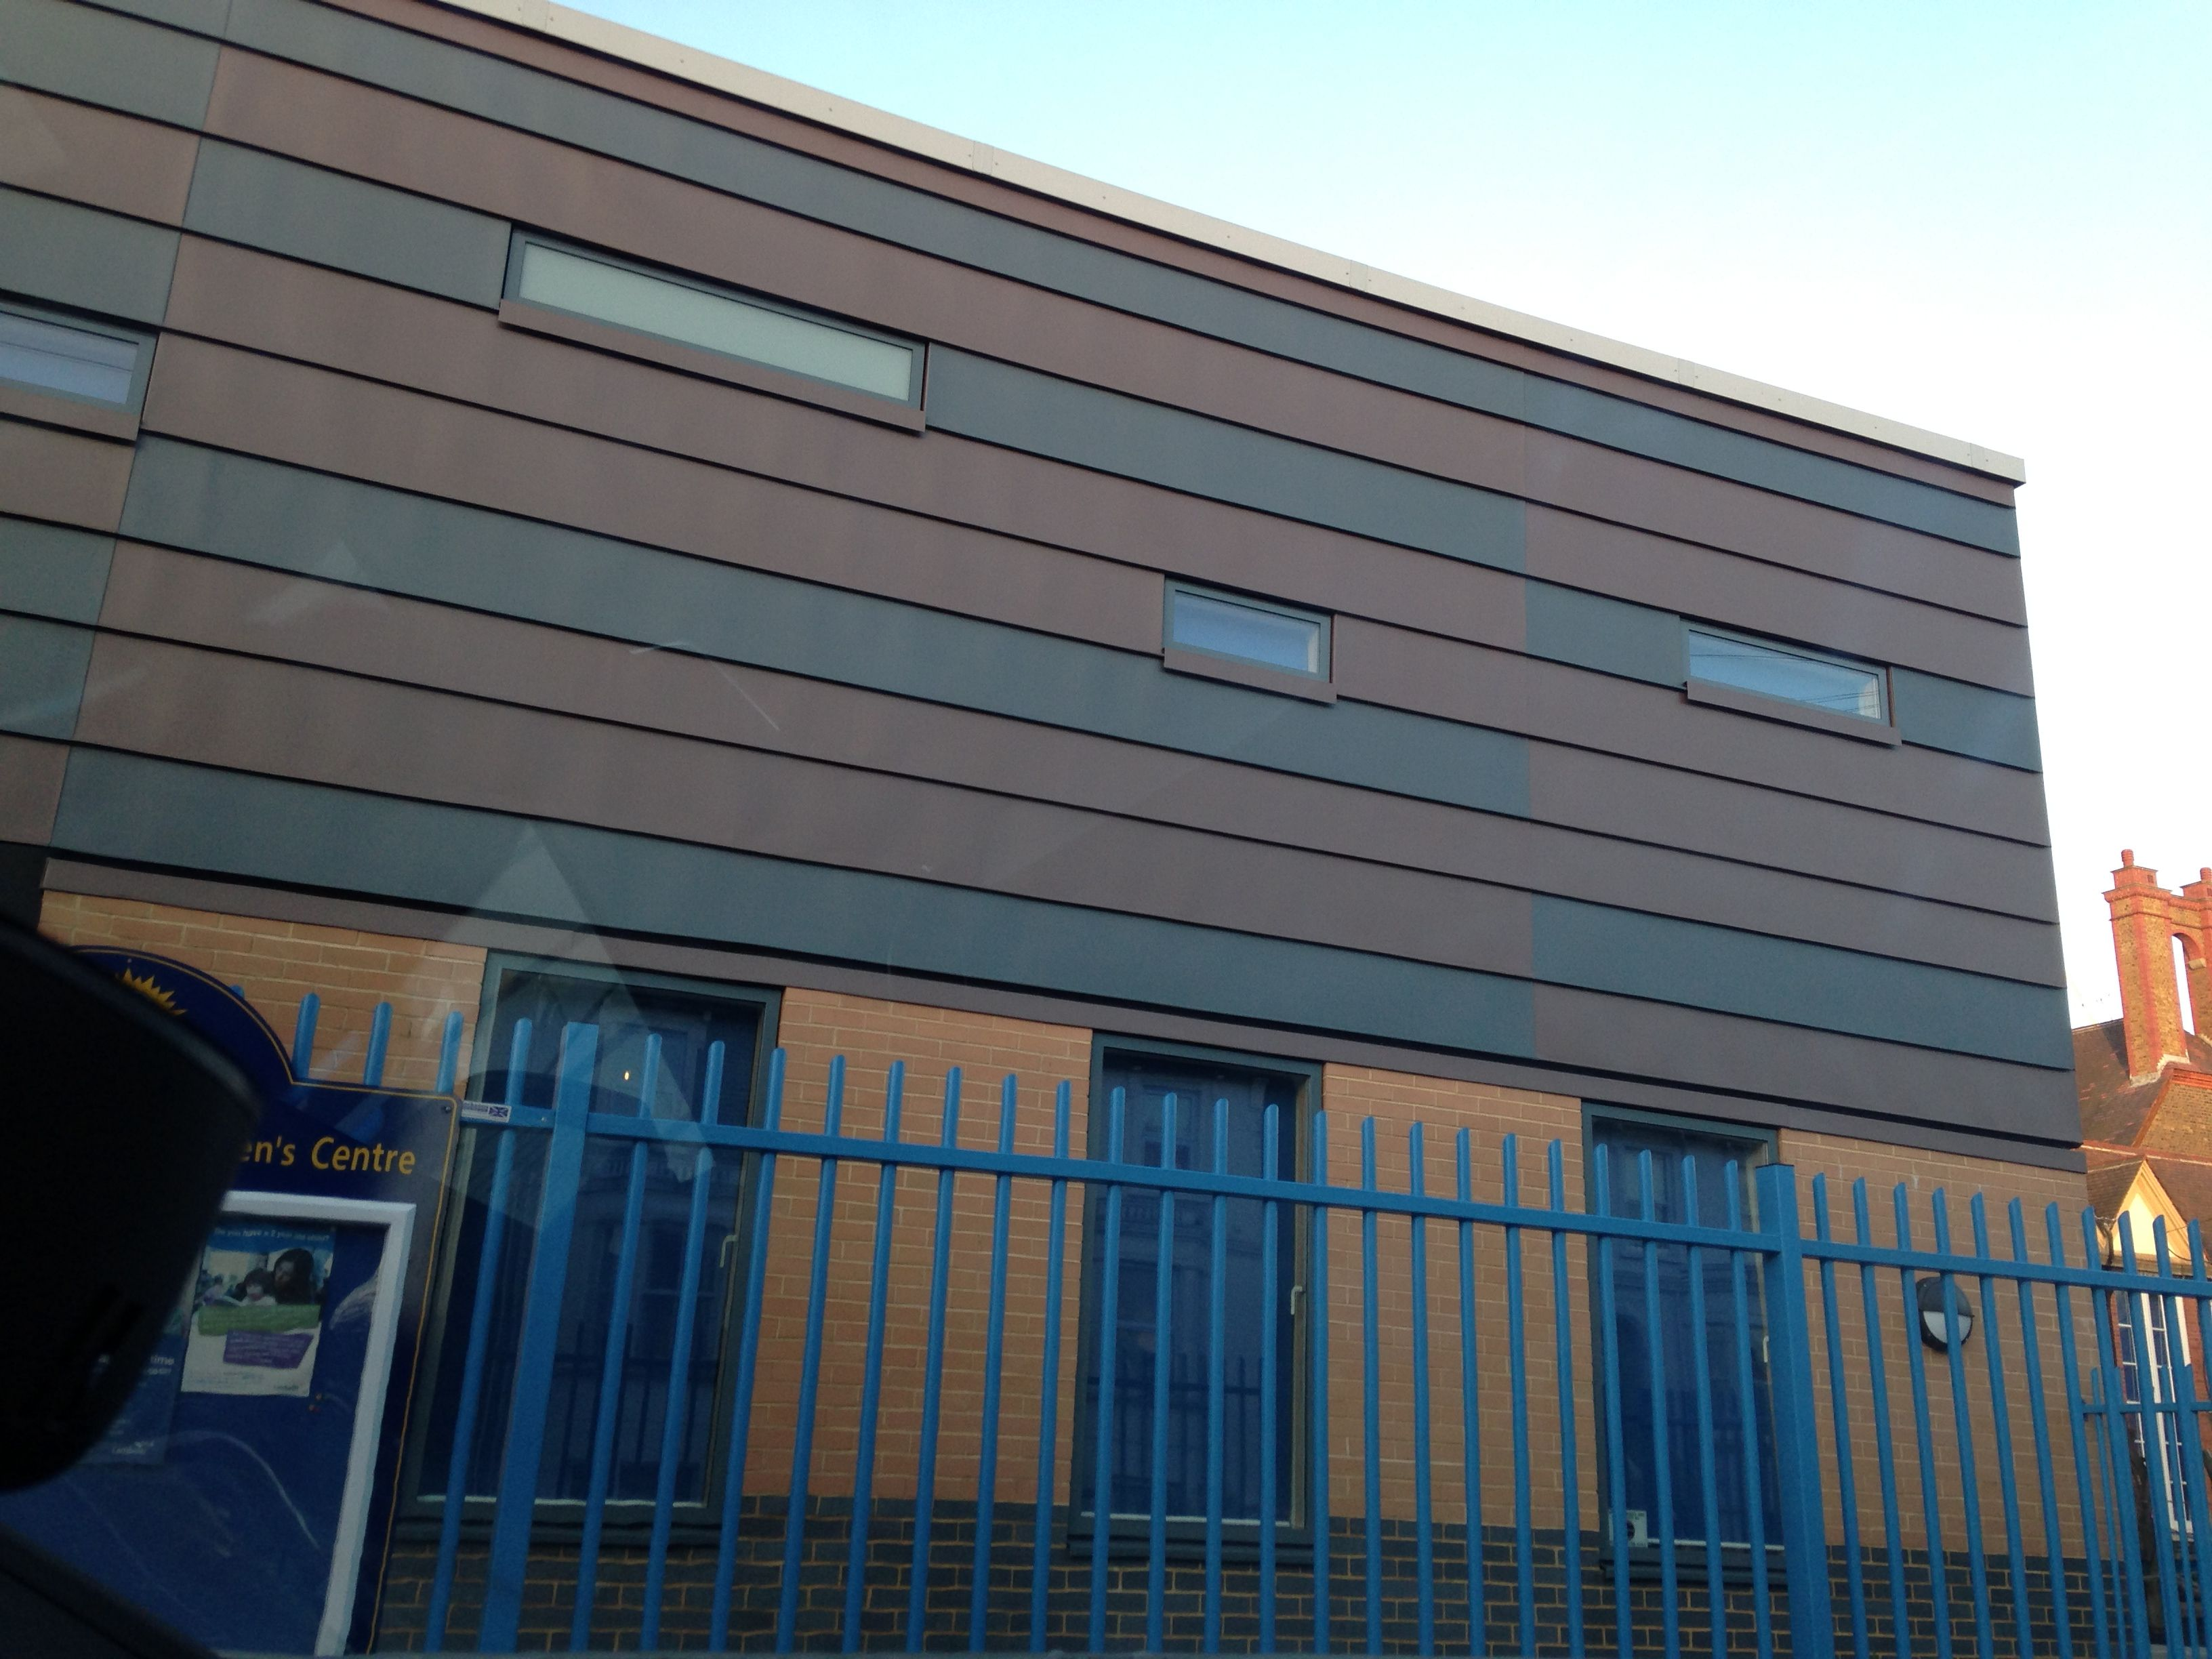 Sunnyhill Primary - VMzinc pigmento zinc cladding in red and blue